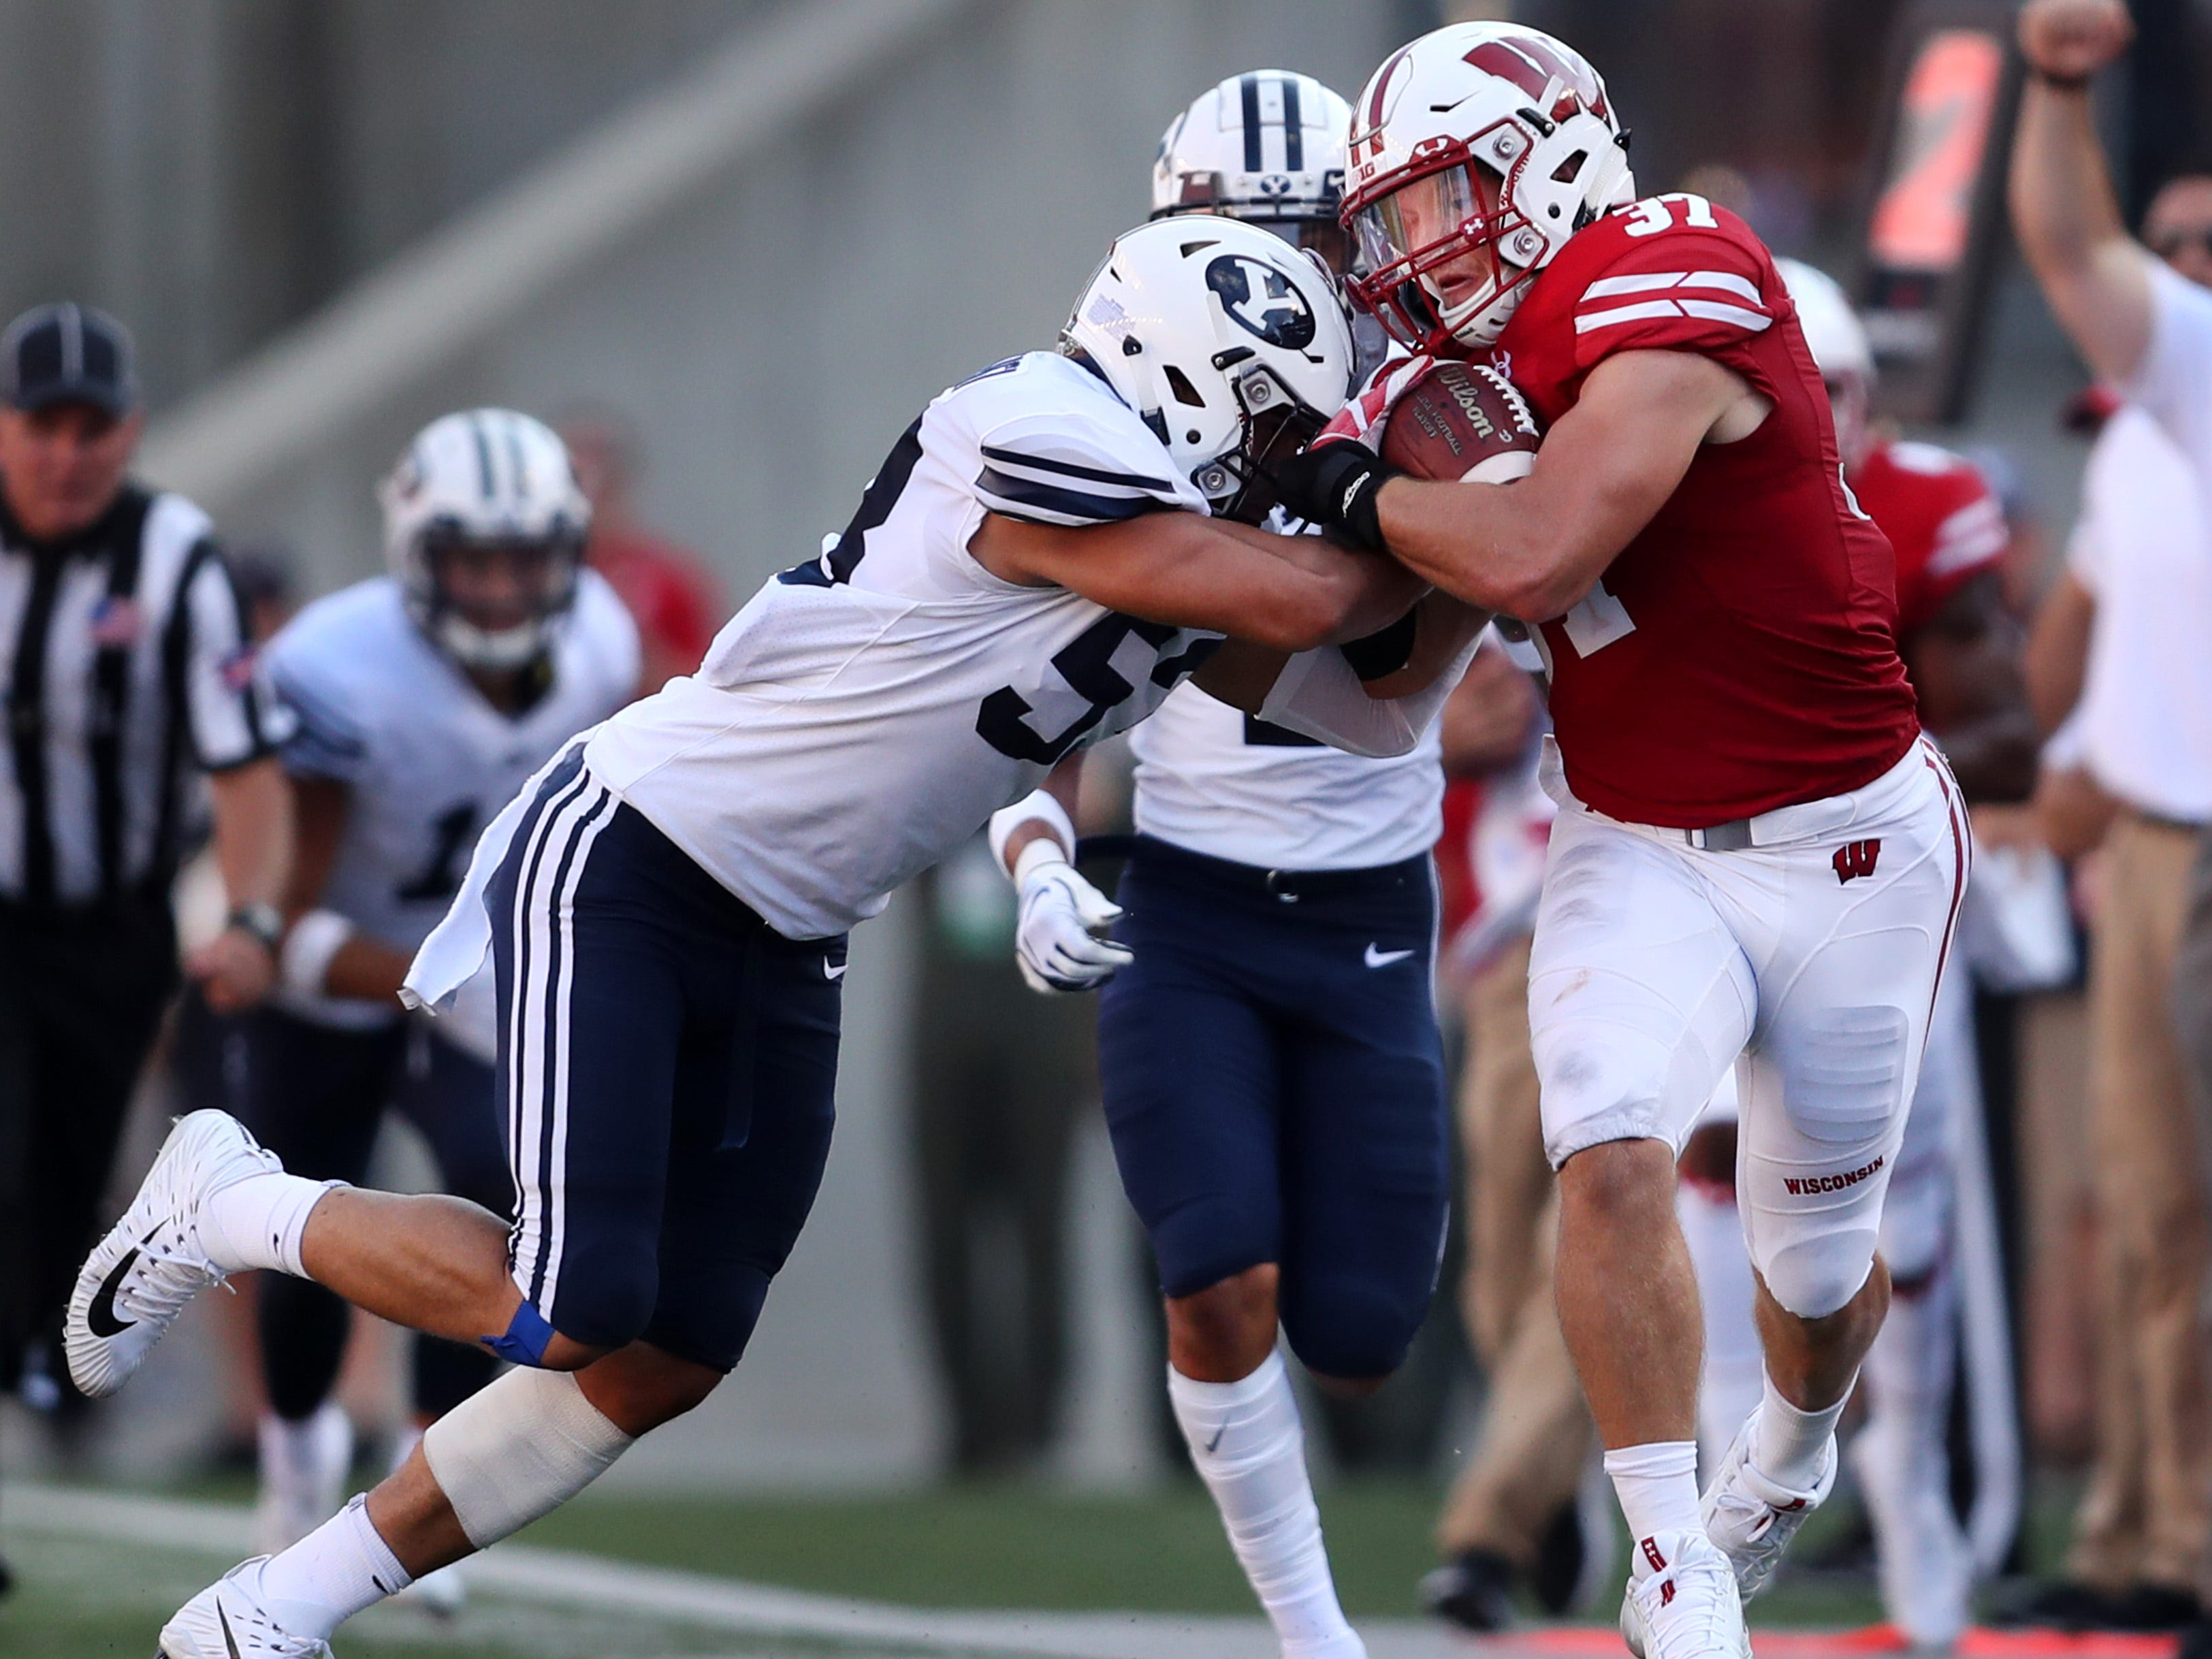 Wisconsin Badgers running back Garrett Groshek is pushed out of bounds by Brigham Young linebacker Isaiah Kaufusi on Saturday.